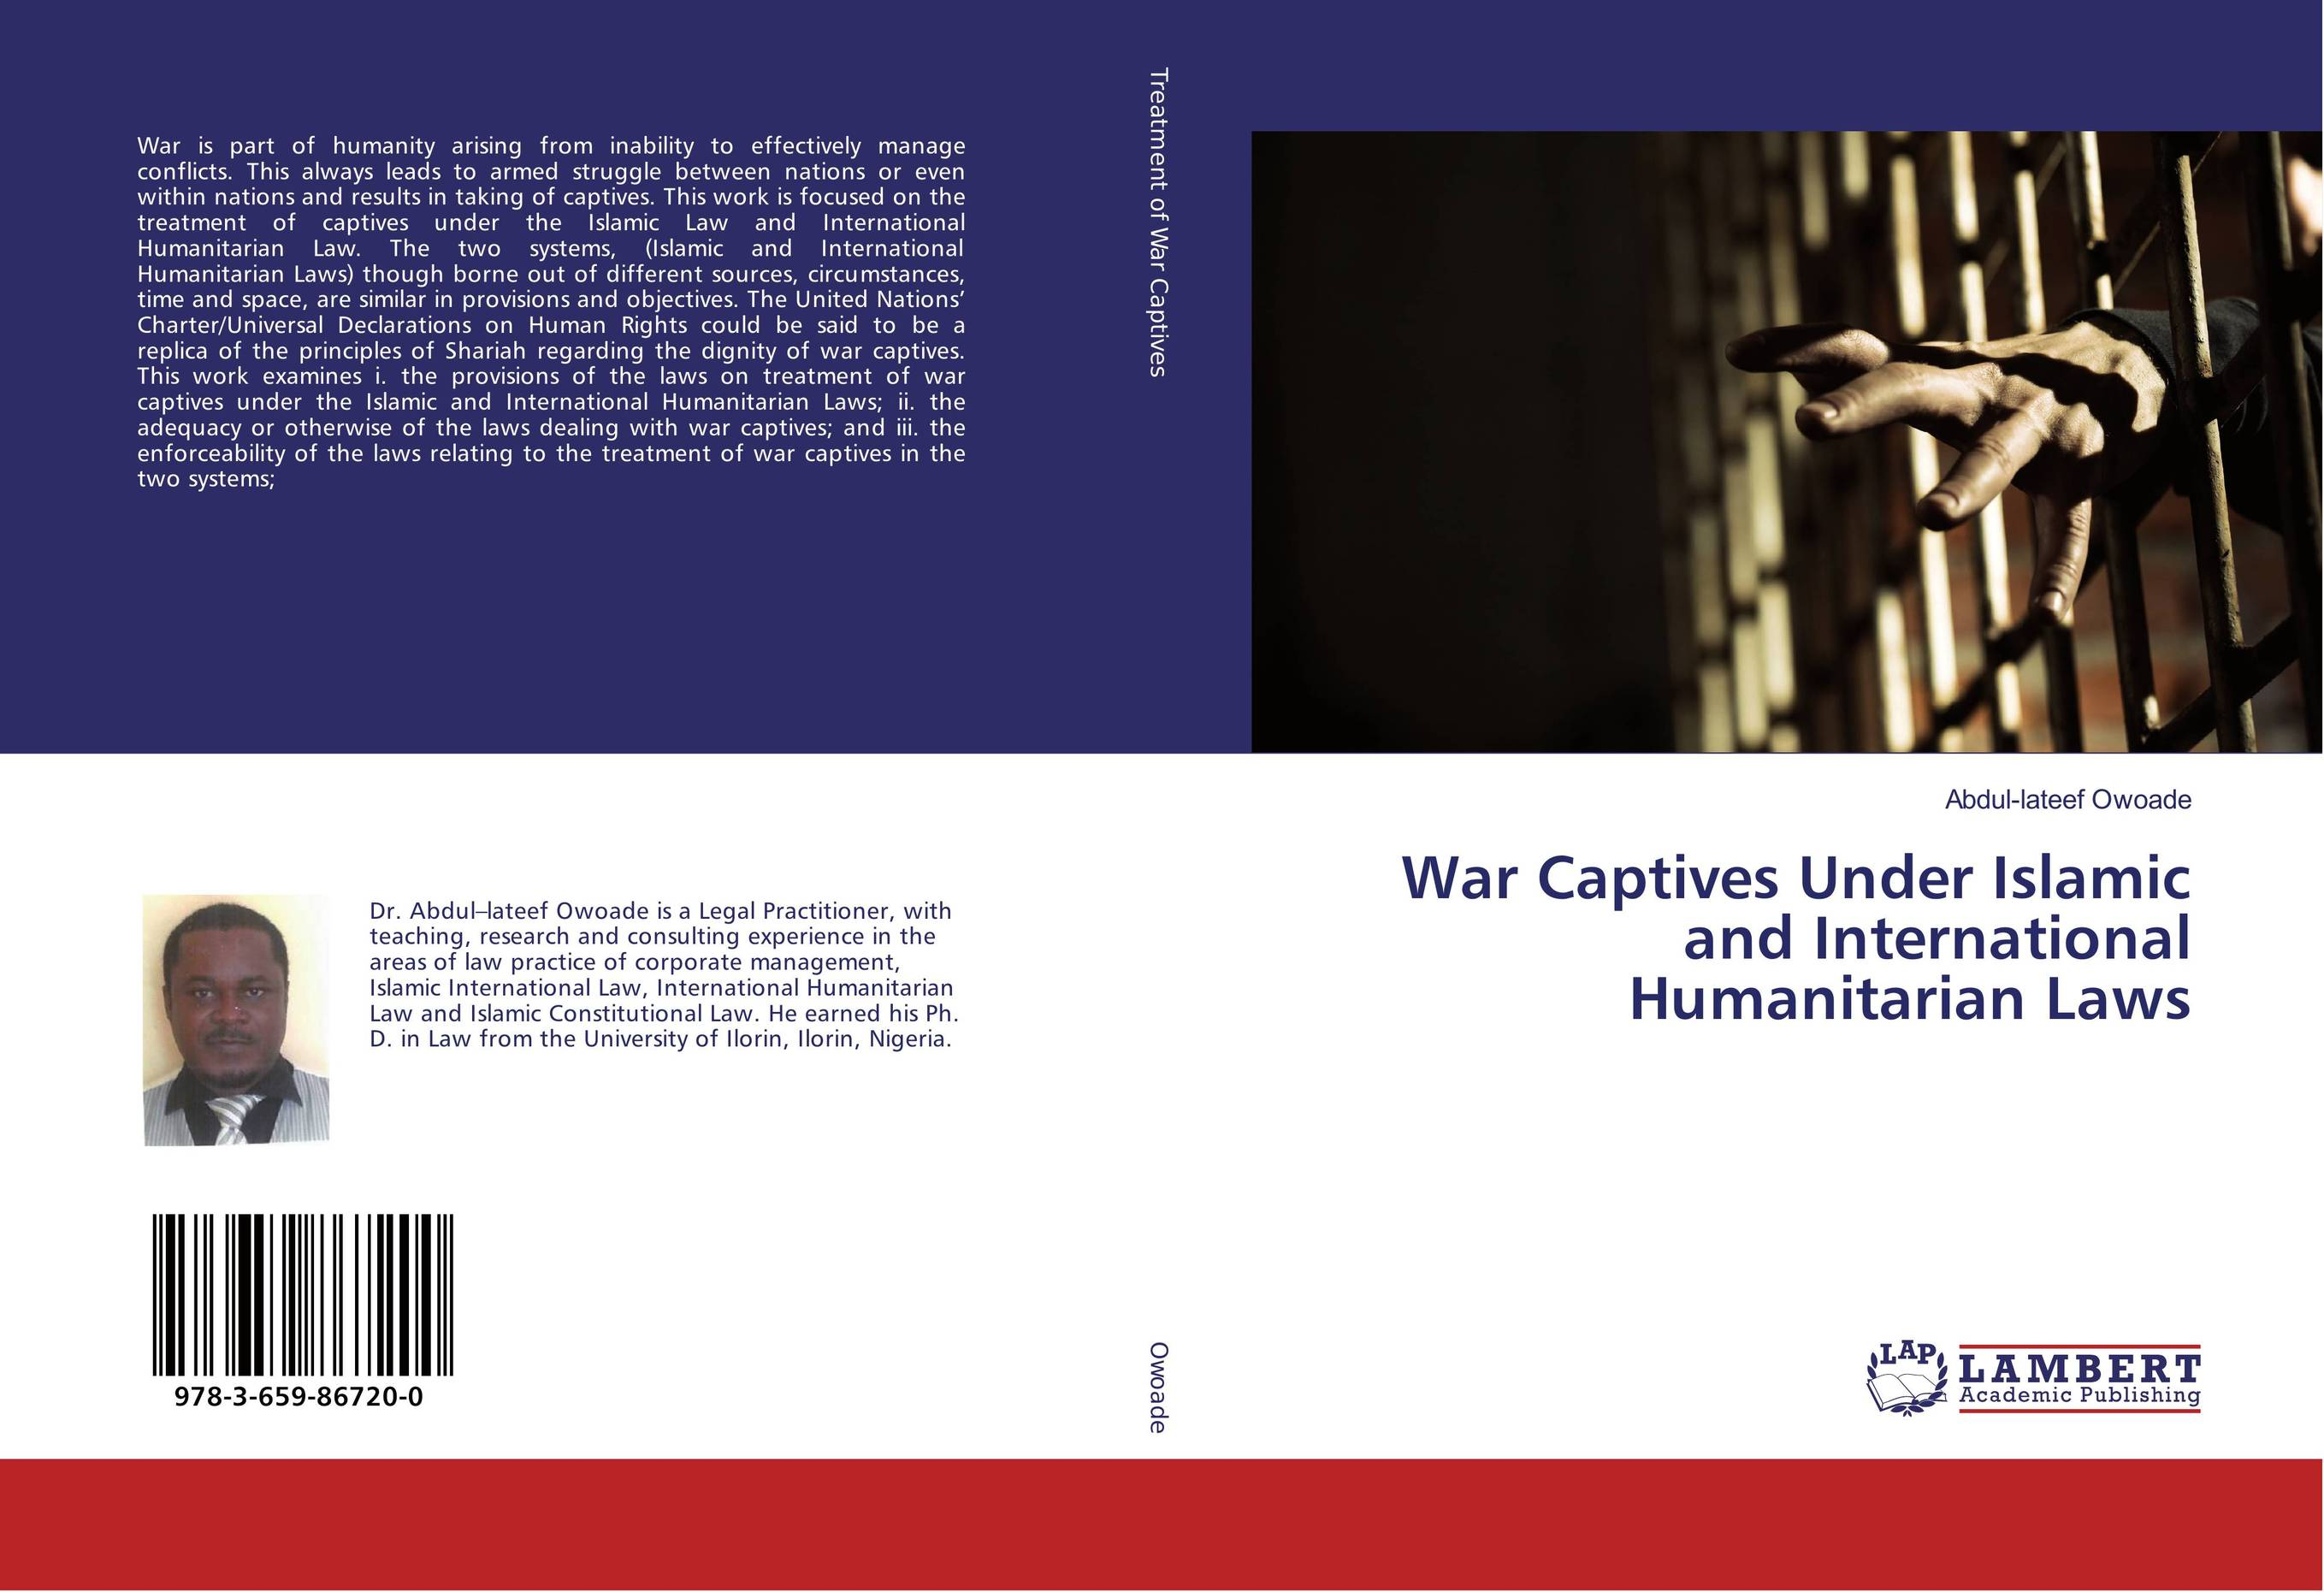 War Captives Under Islamic and International Humanitarian Laws a history of the laws of war volume 1